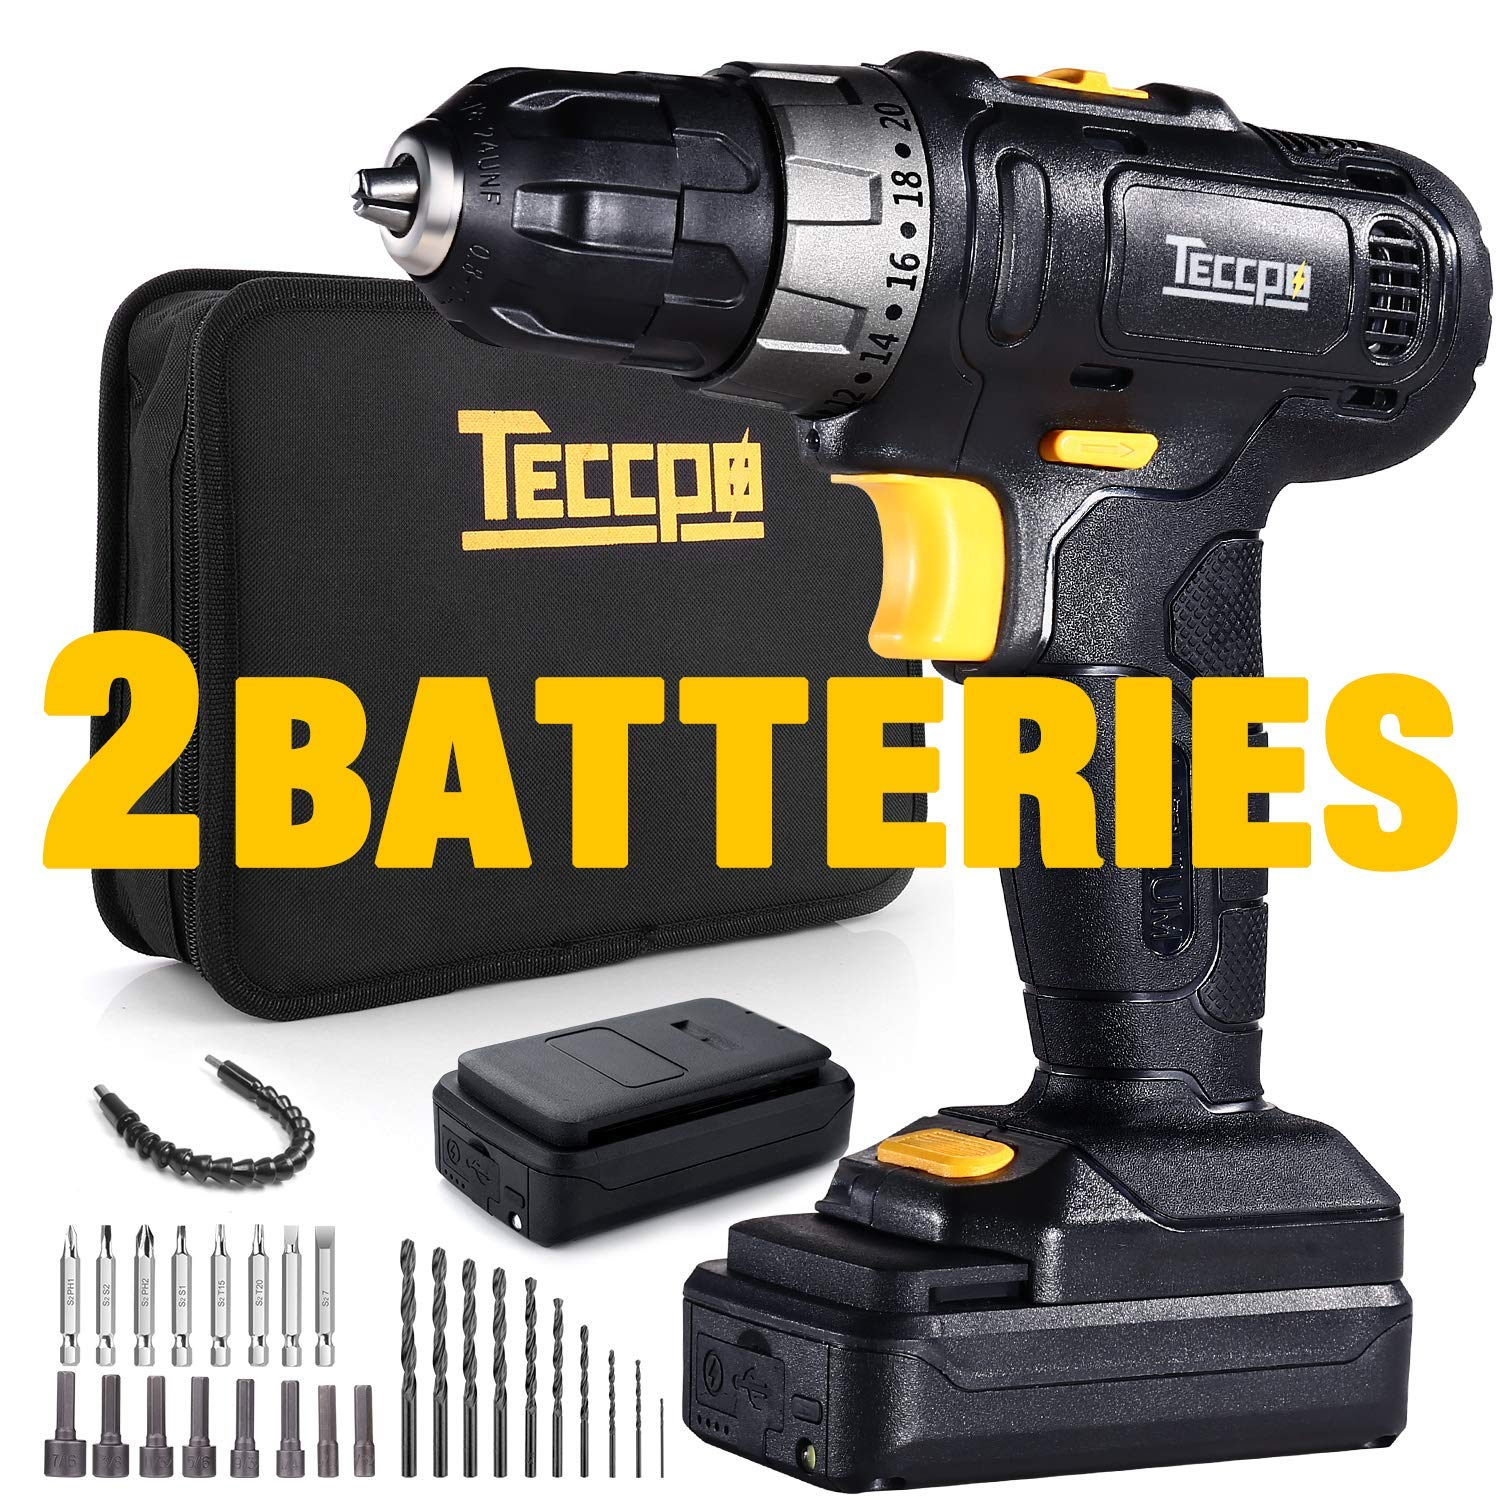 Cordless Drill, TECCPO 2pcs 2.0Ah Lithium-Ion Compact Drill Driver Set, 20+1 Position, 2-Speed Max Torque 240In-lbs, 3/8'' Chuck Max, 27pcs Accessories, LED Light - TDCD02P